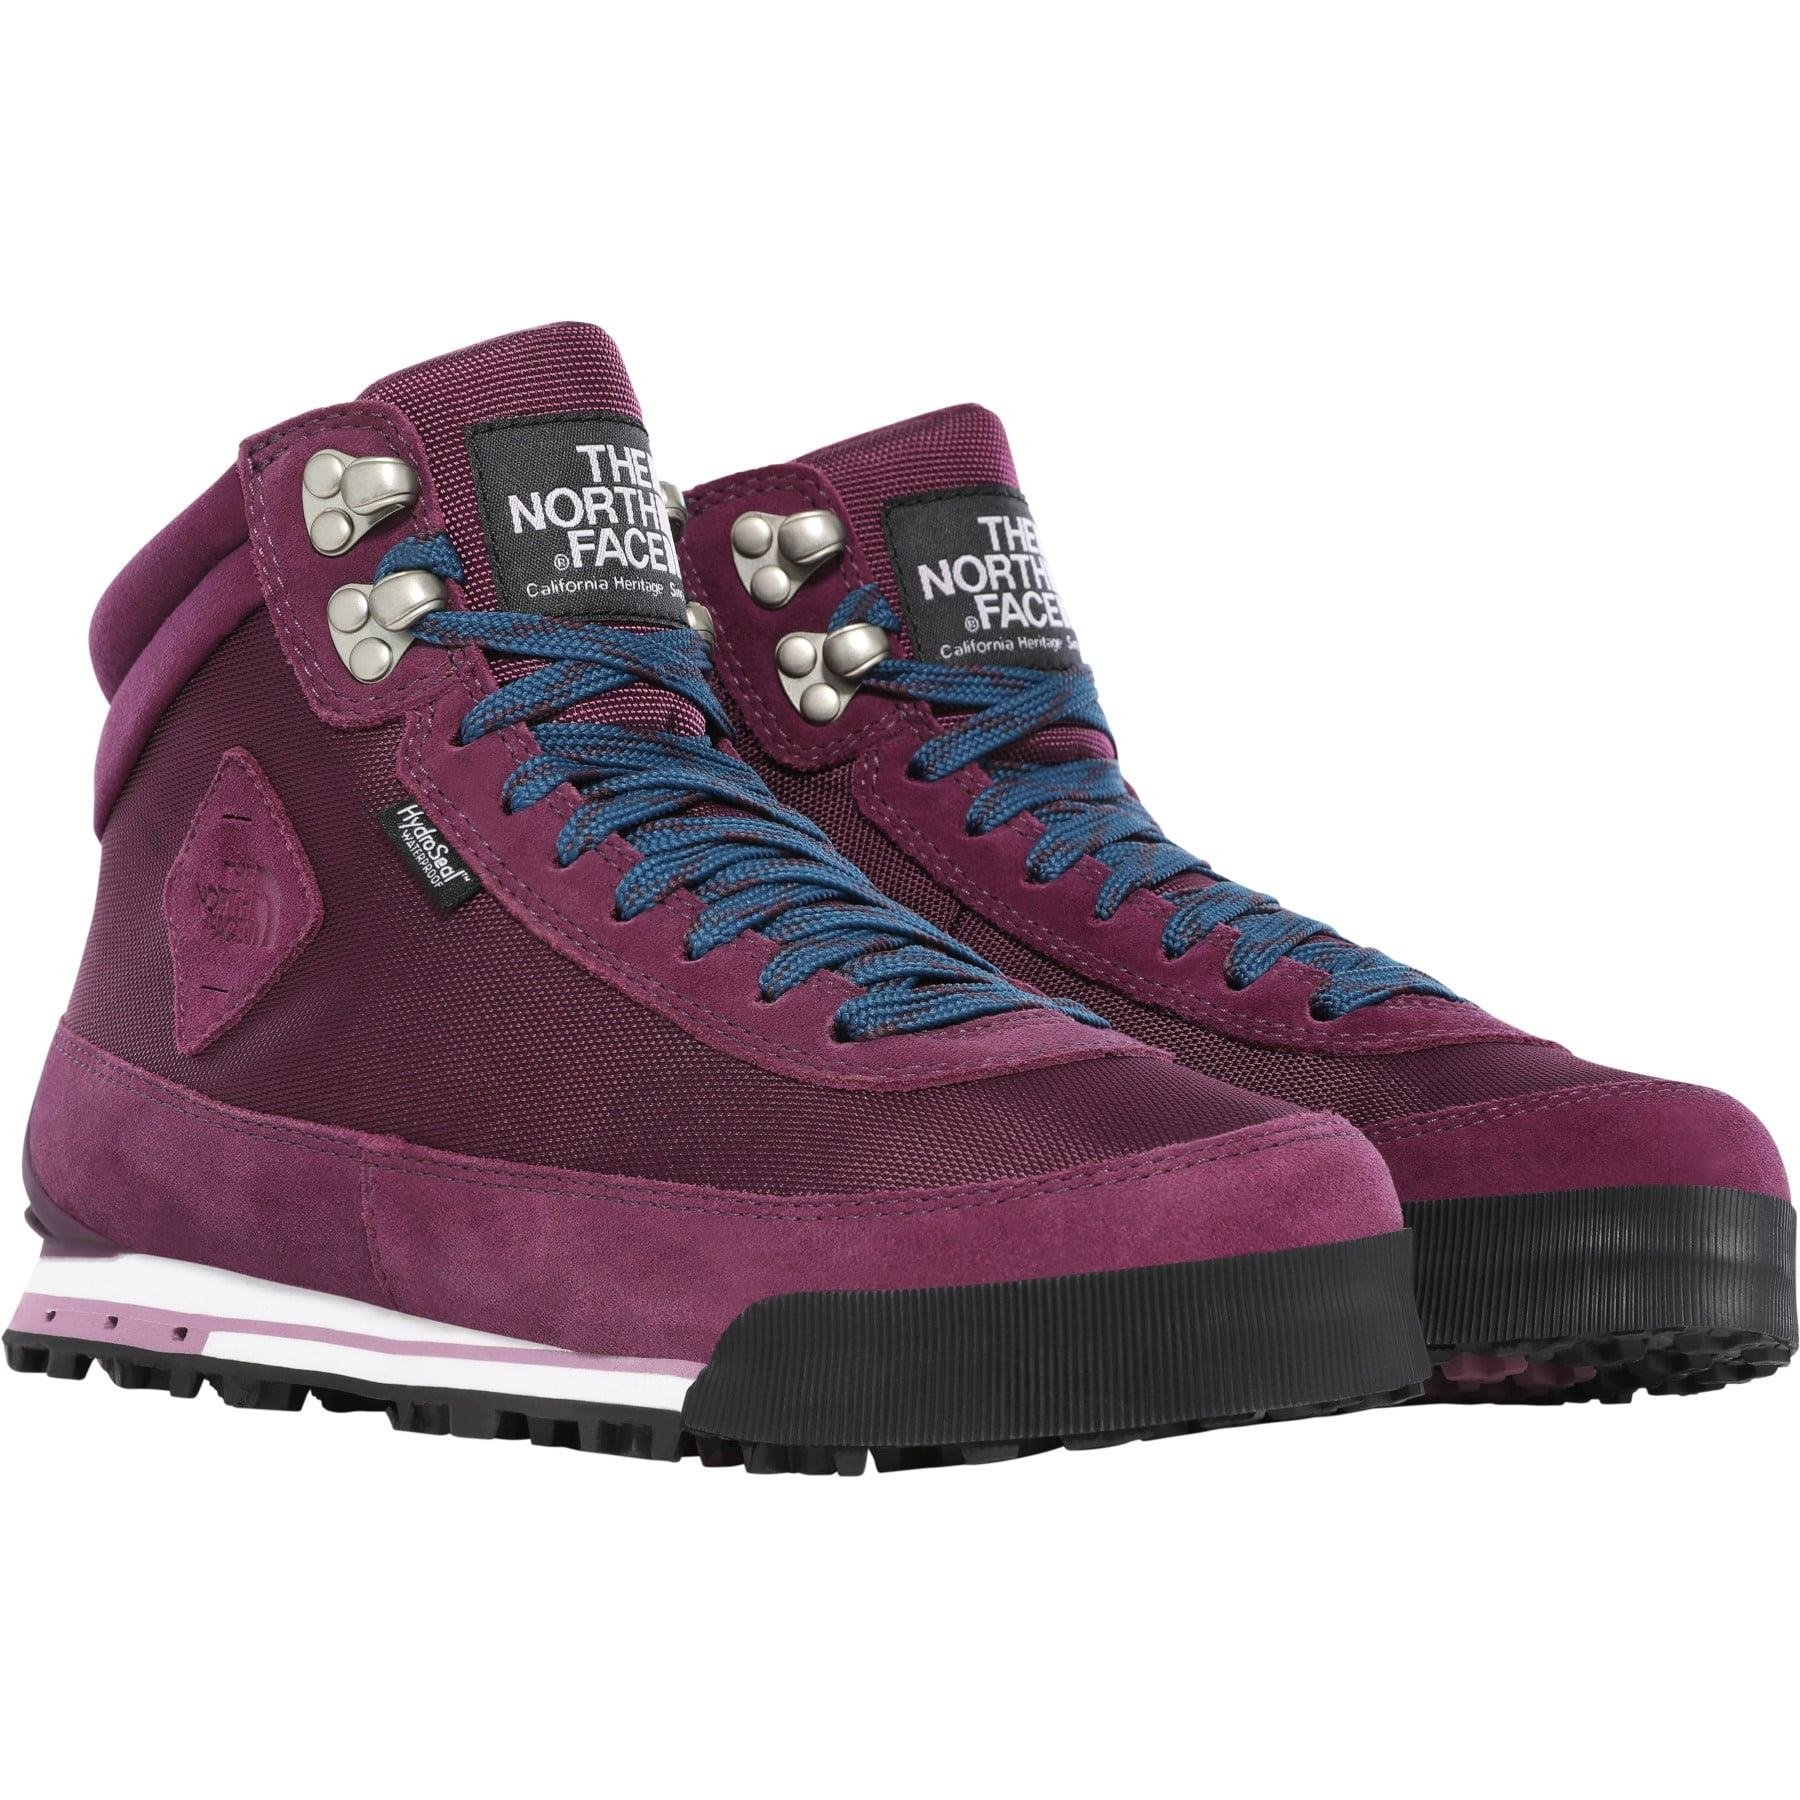 the north face buty zimowe damskie